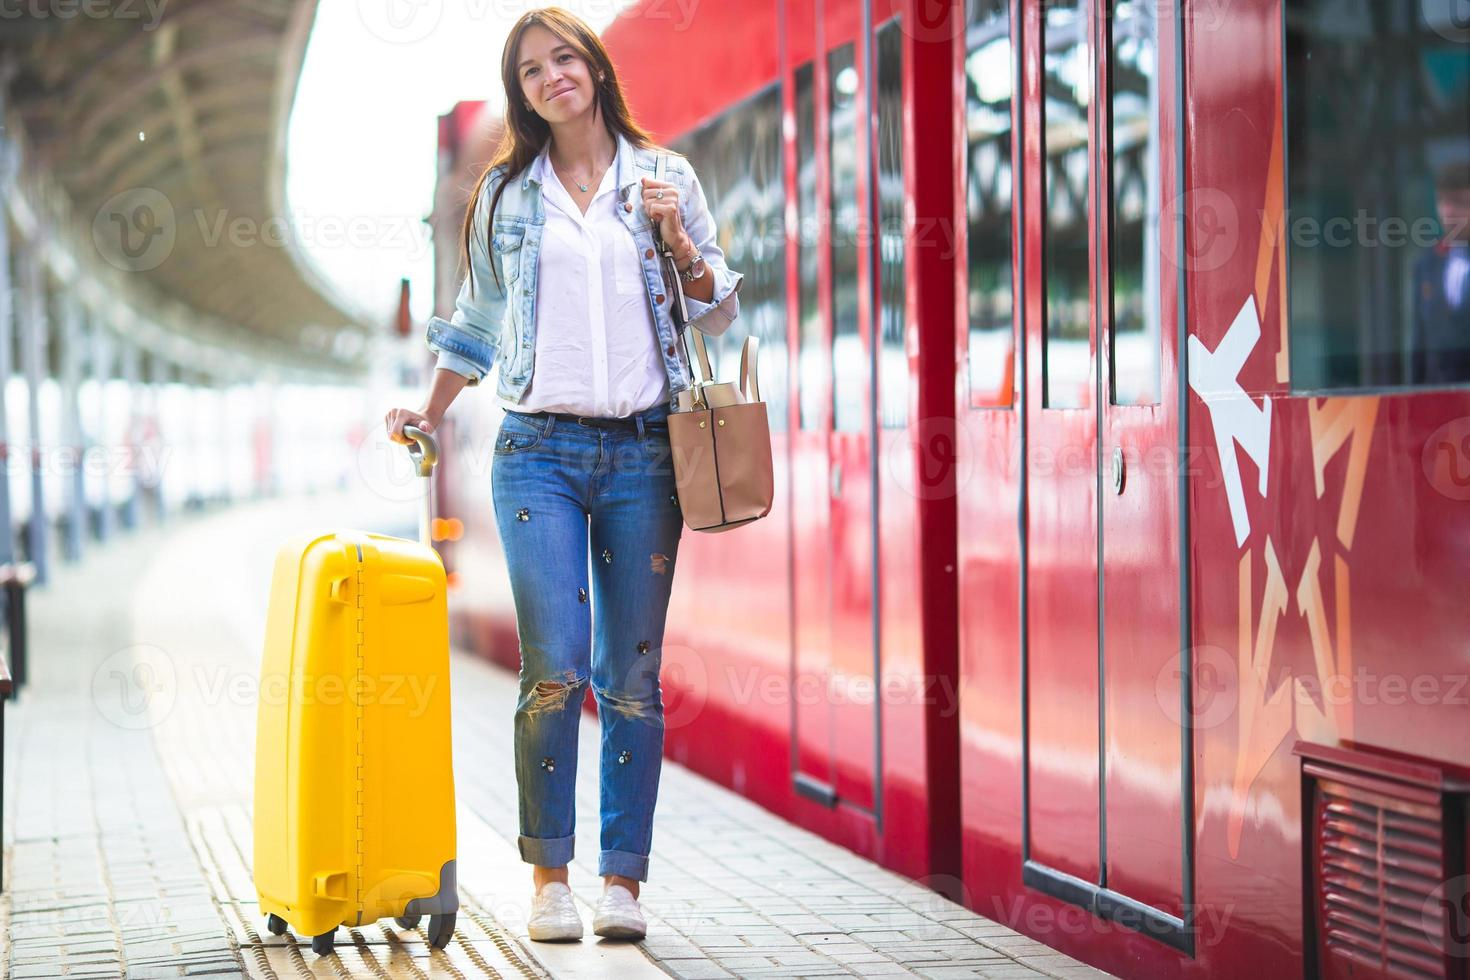 Young woman with luggage at train station waiting for train photo